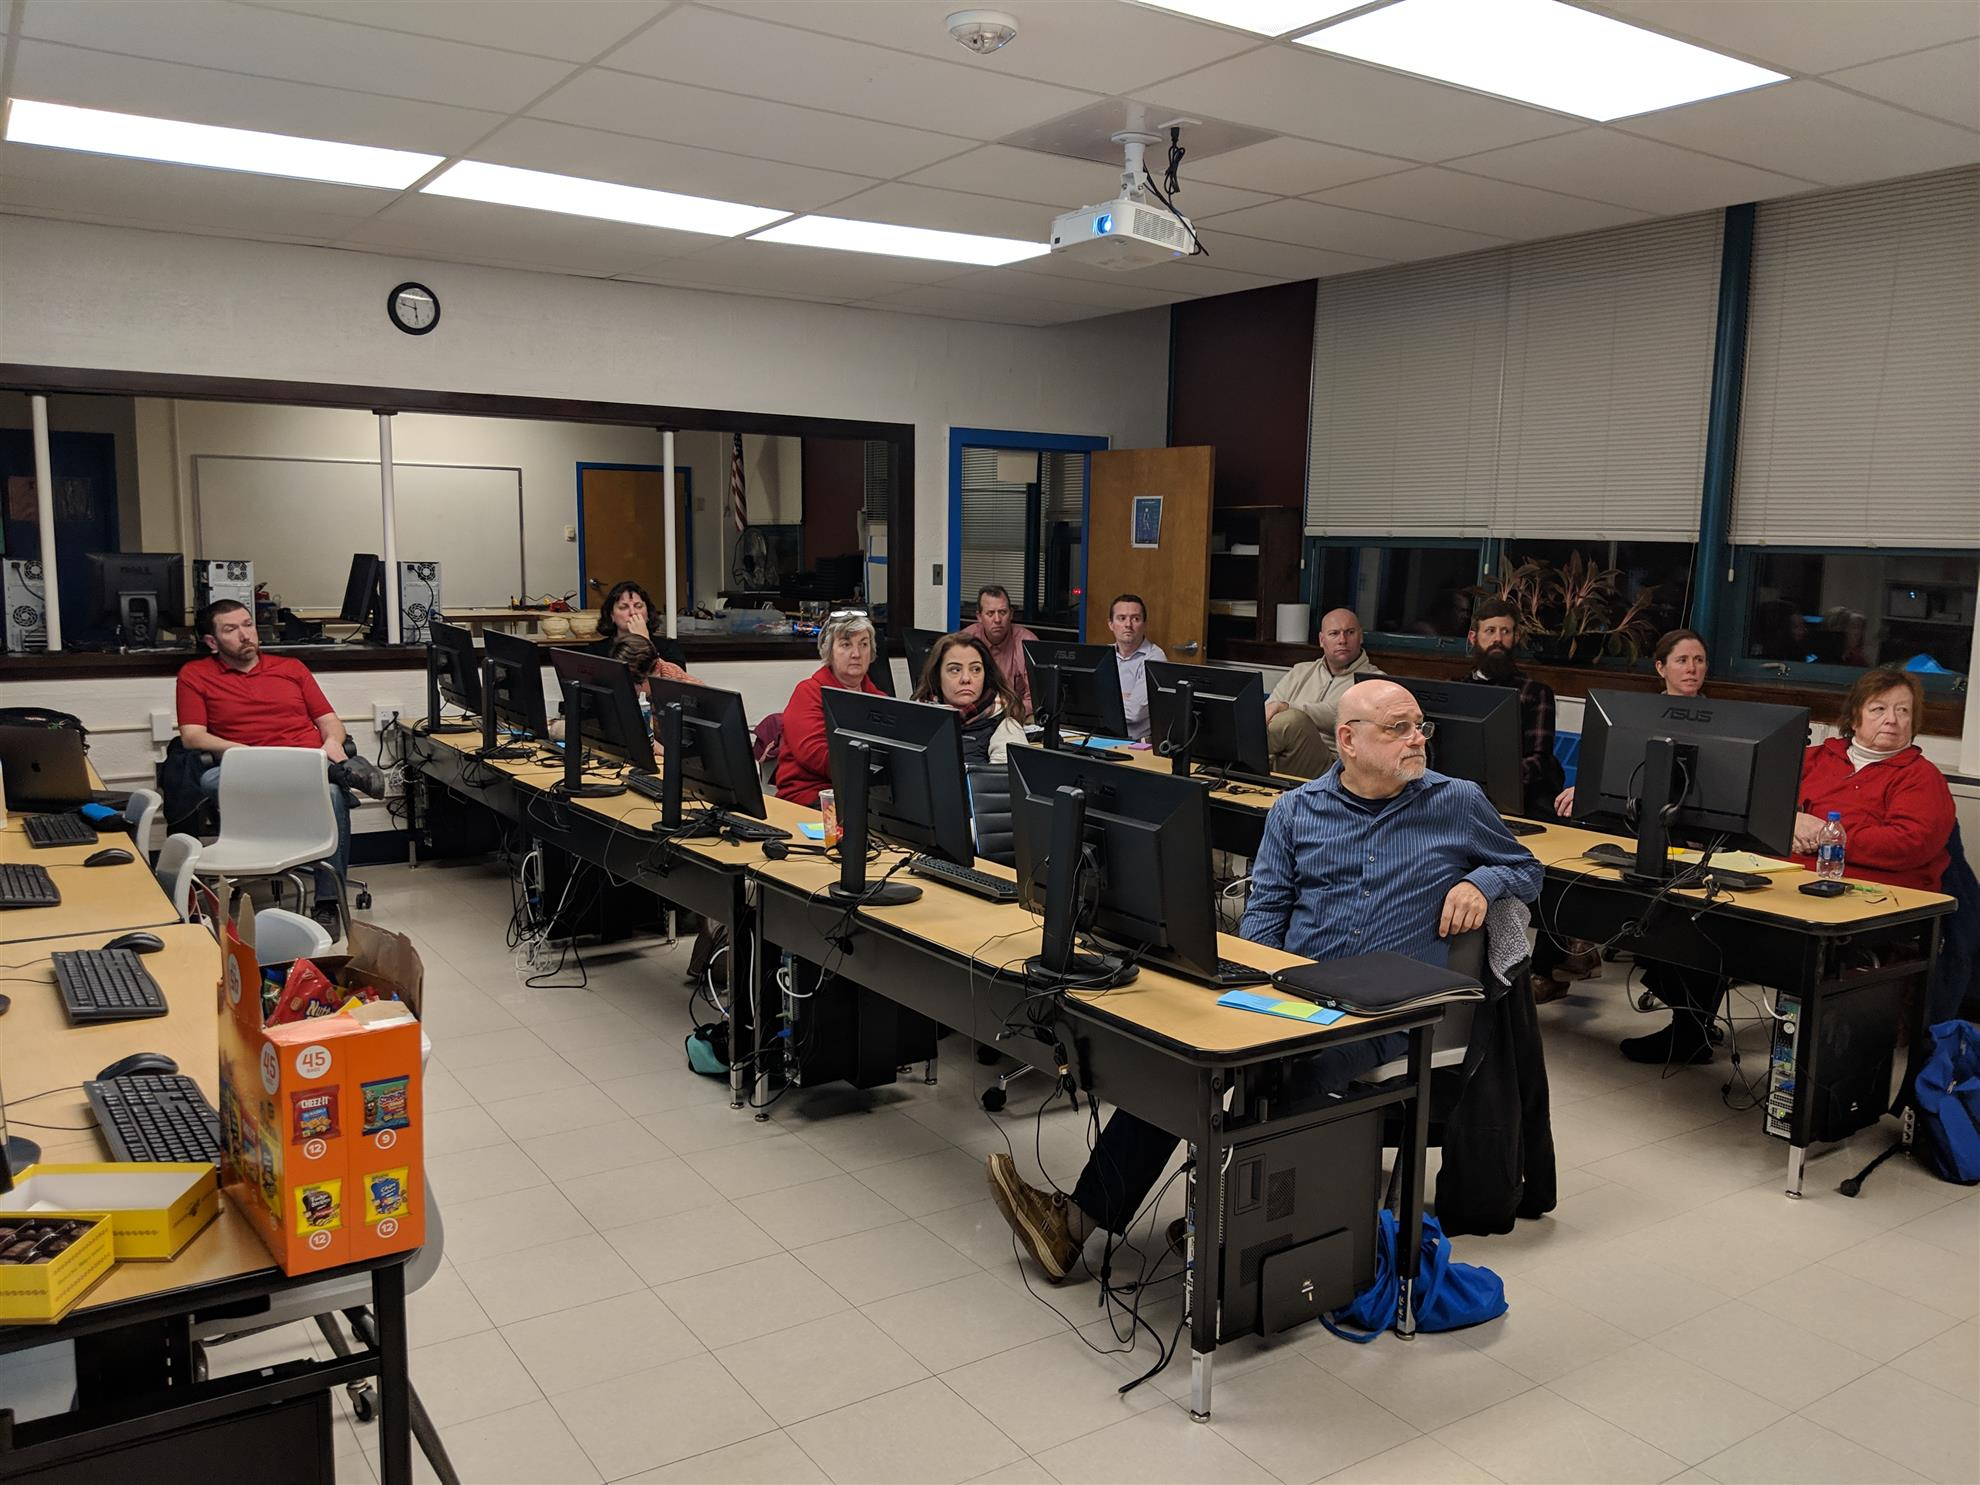 Mini EdCamp held at Scituate High School